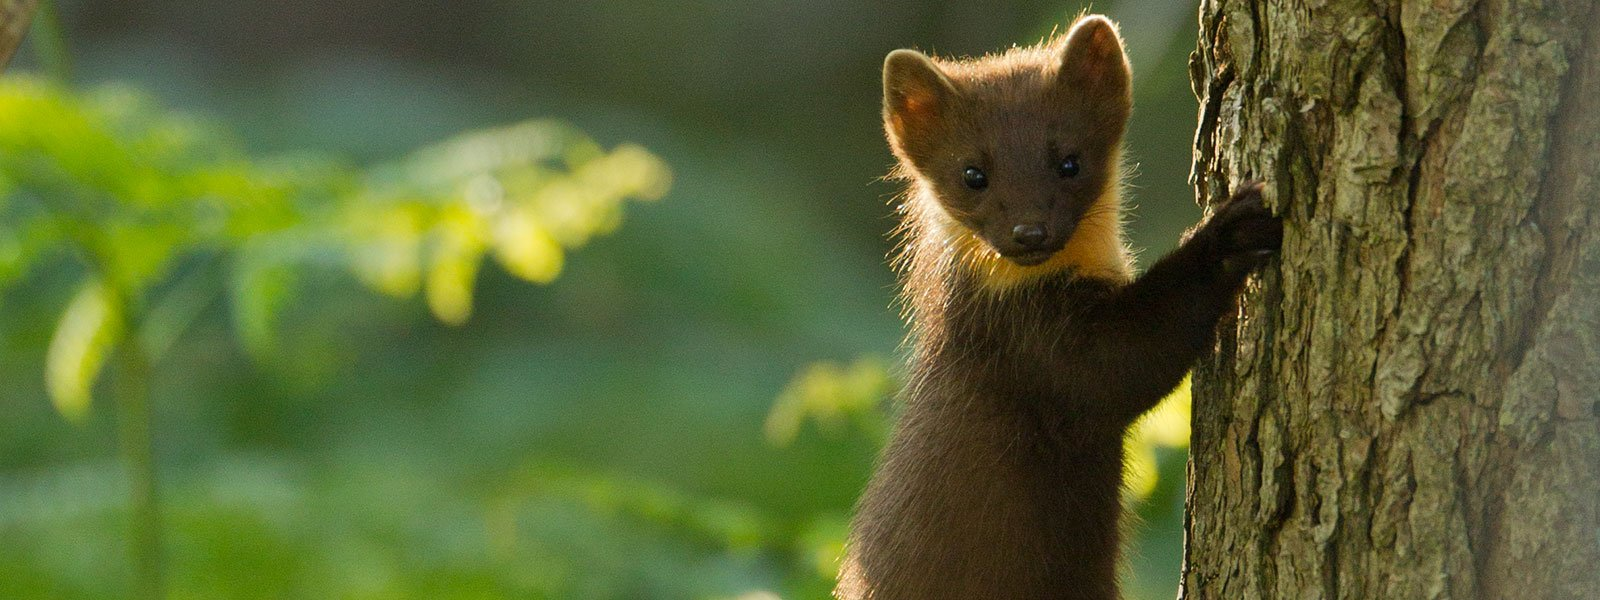 Pine marten on tree (c) Mark Hamblin, 2020VISION